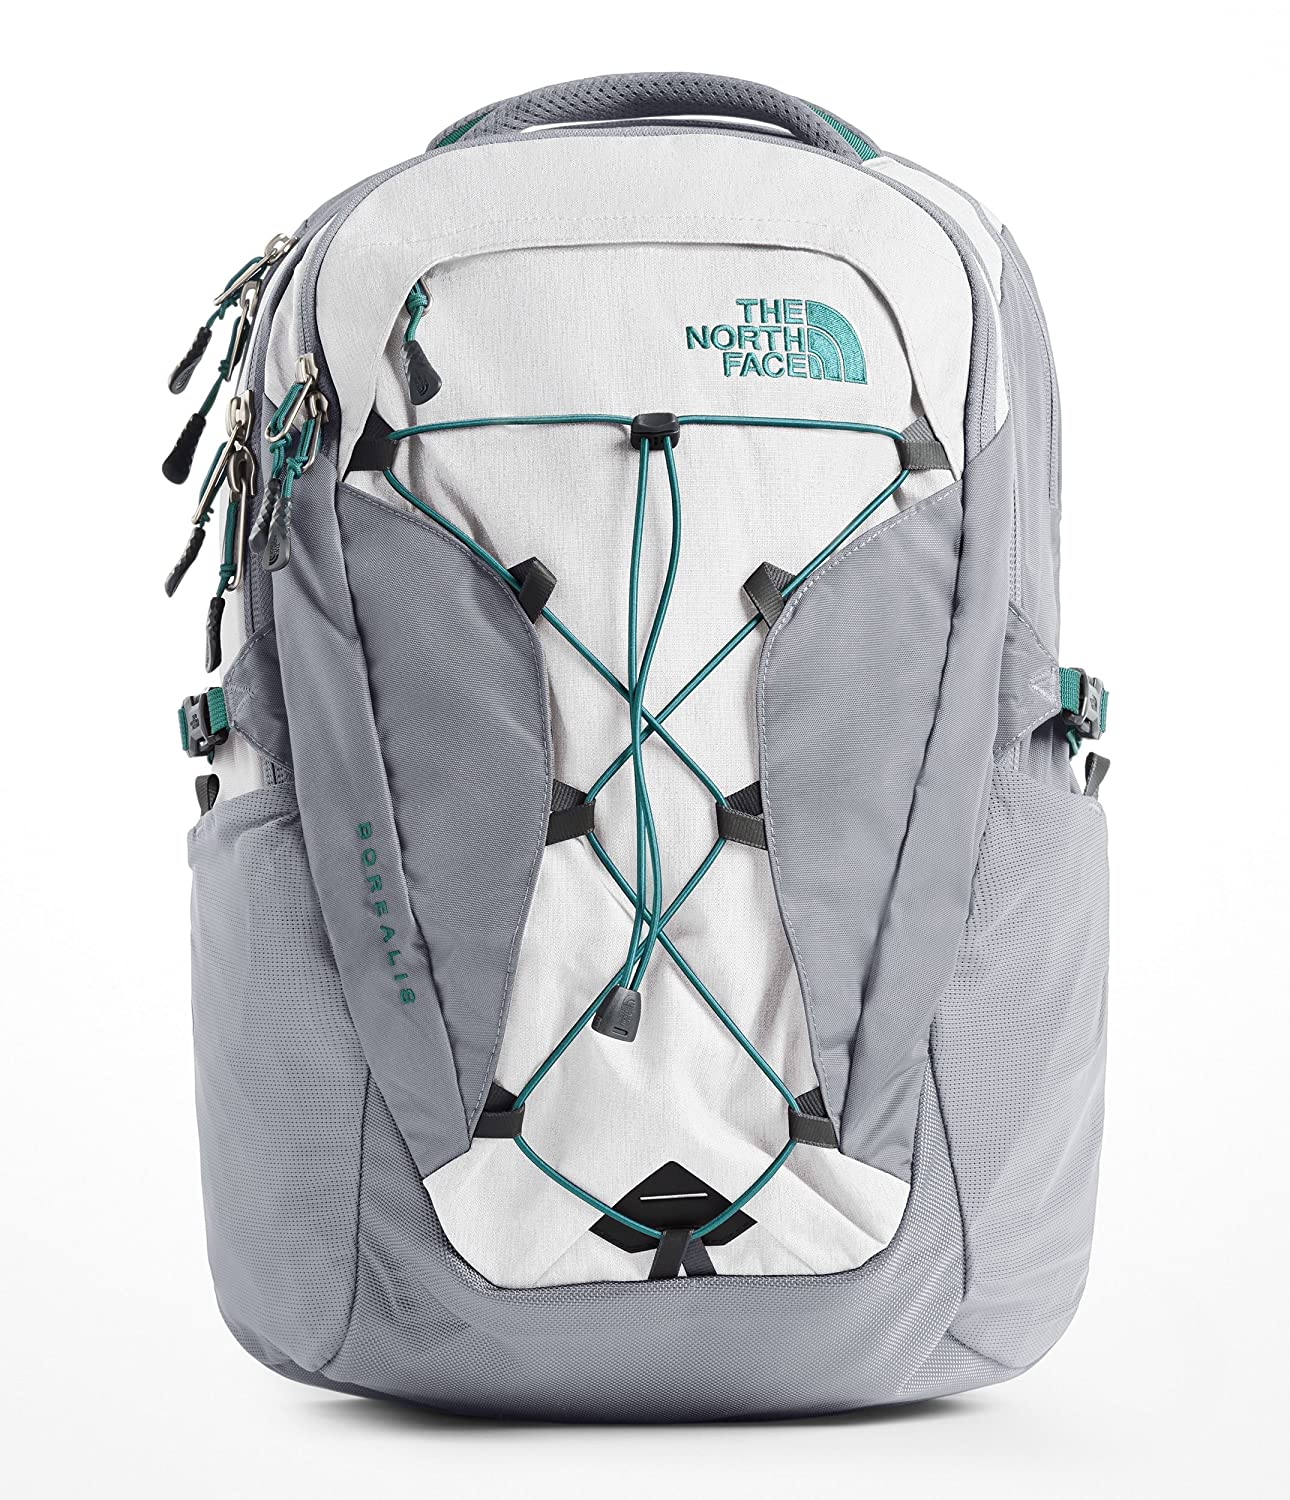 The North Face Women's Borealis Backpack - TNF Black - OS NF0A3KV4JK3-OS